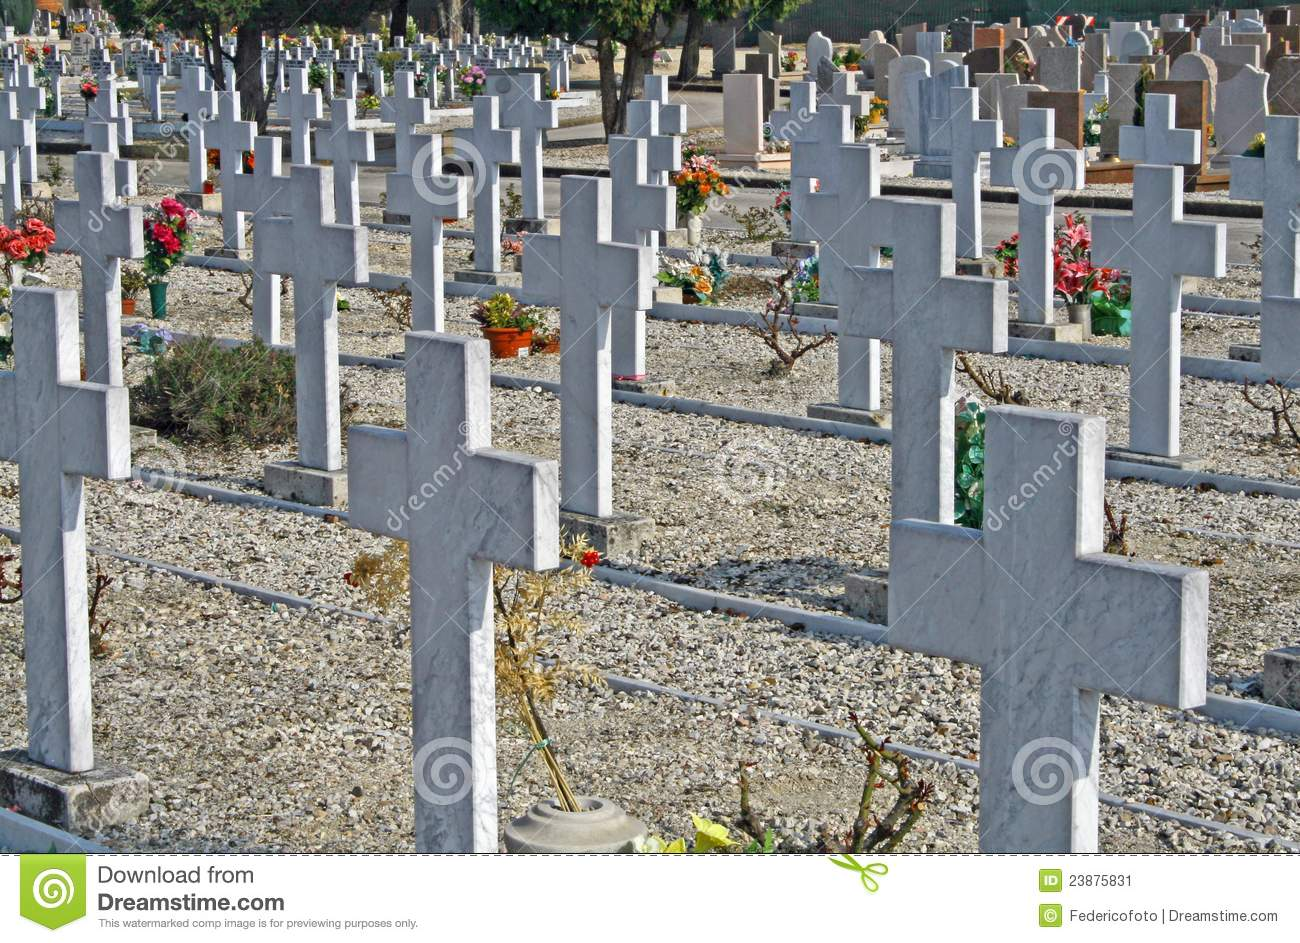 Graves headstones and crucifixes of a cemetery